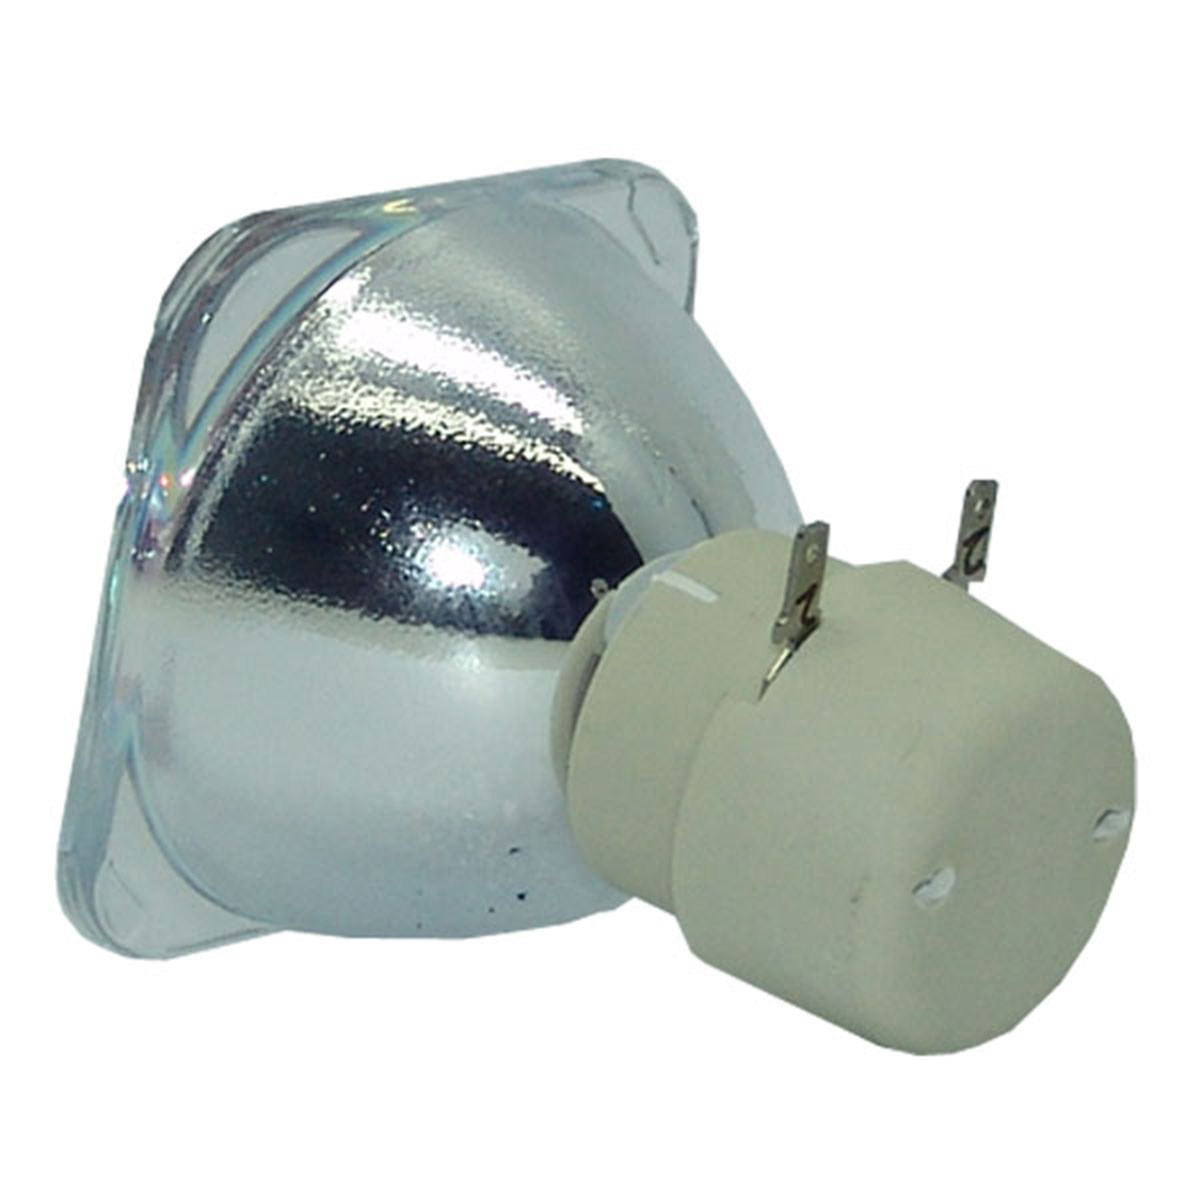 Original Philips Projector Lamp Replacement for BenQ MP514 (Bulb Only) - image 2 de 5